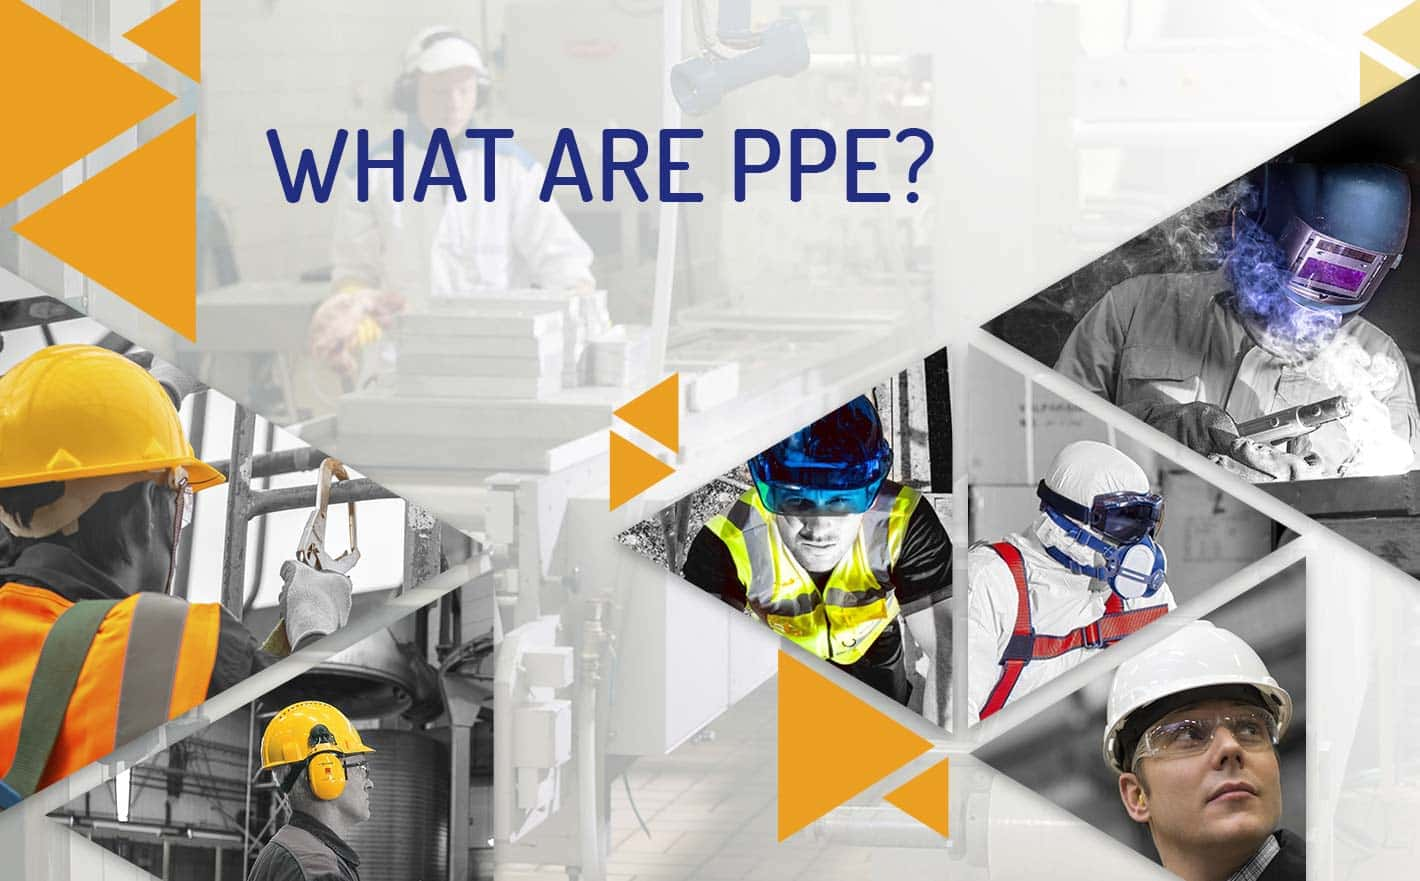 What are PPE?